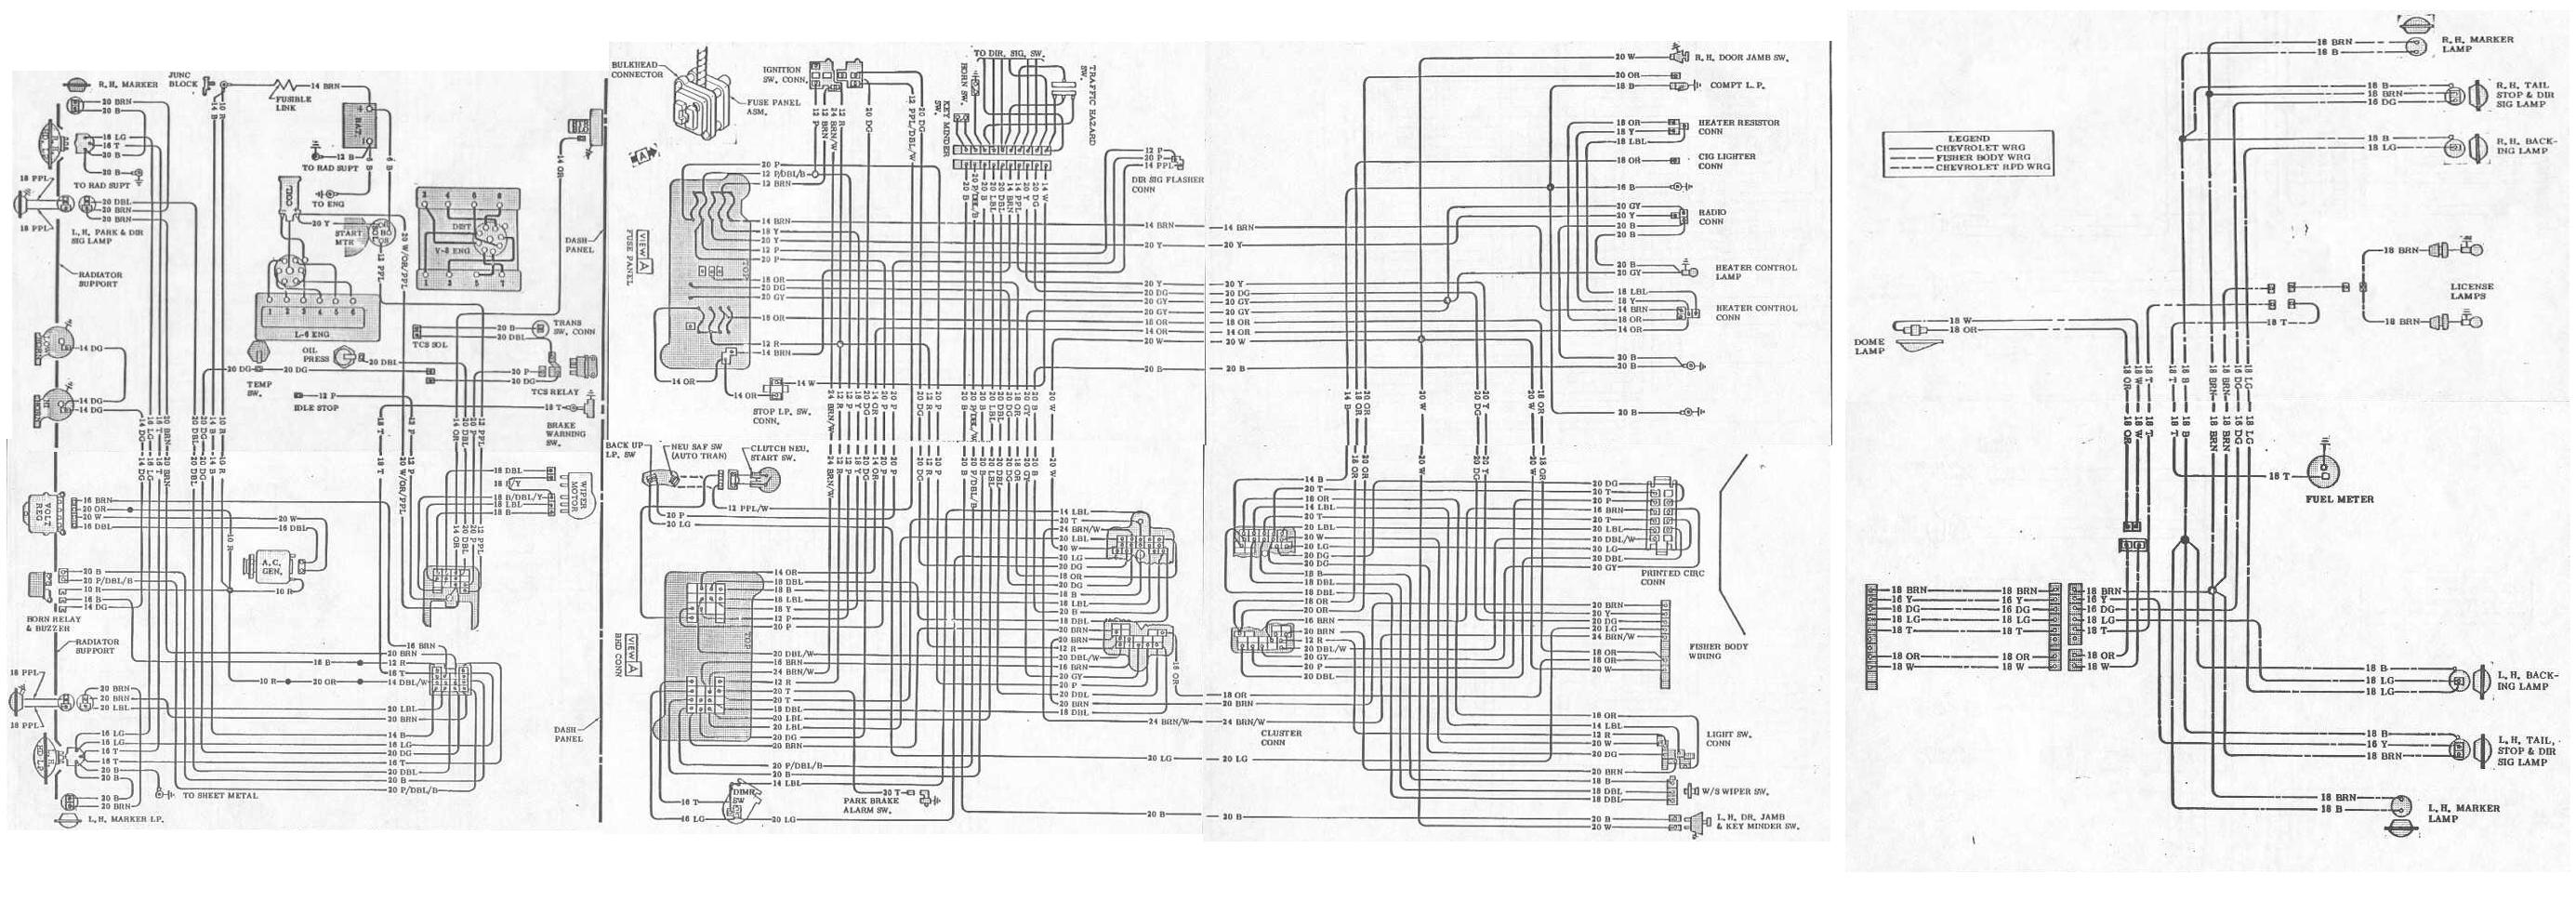 70 Pontiac Gto Wiring Diagram Library 2004 Schematic Diagrams Rh Nastyz28 Com 1970 Firebird